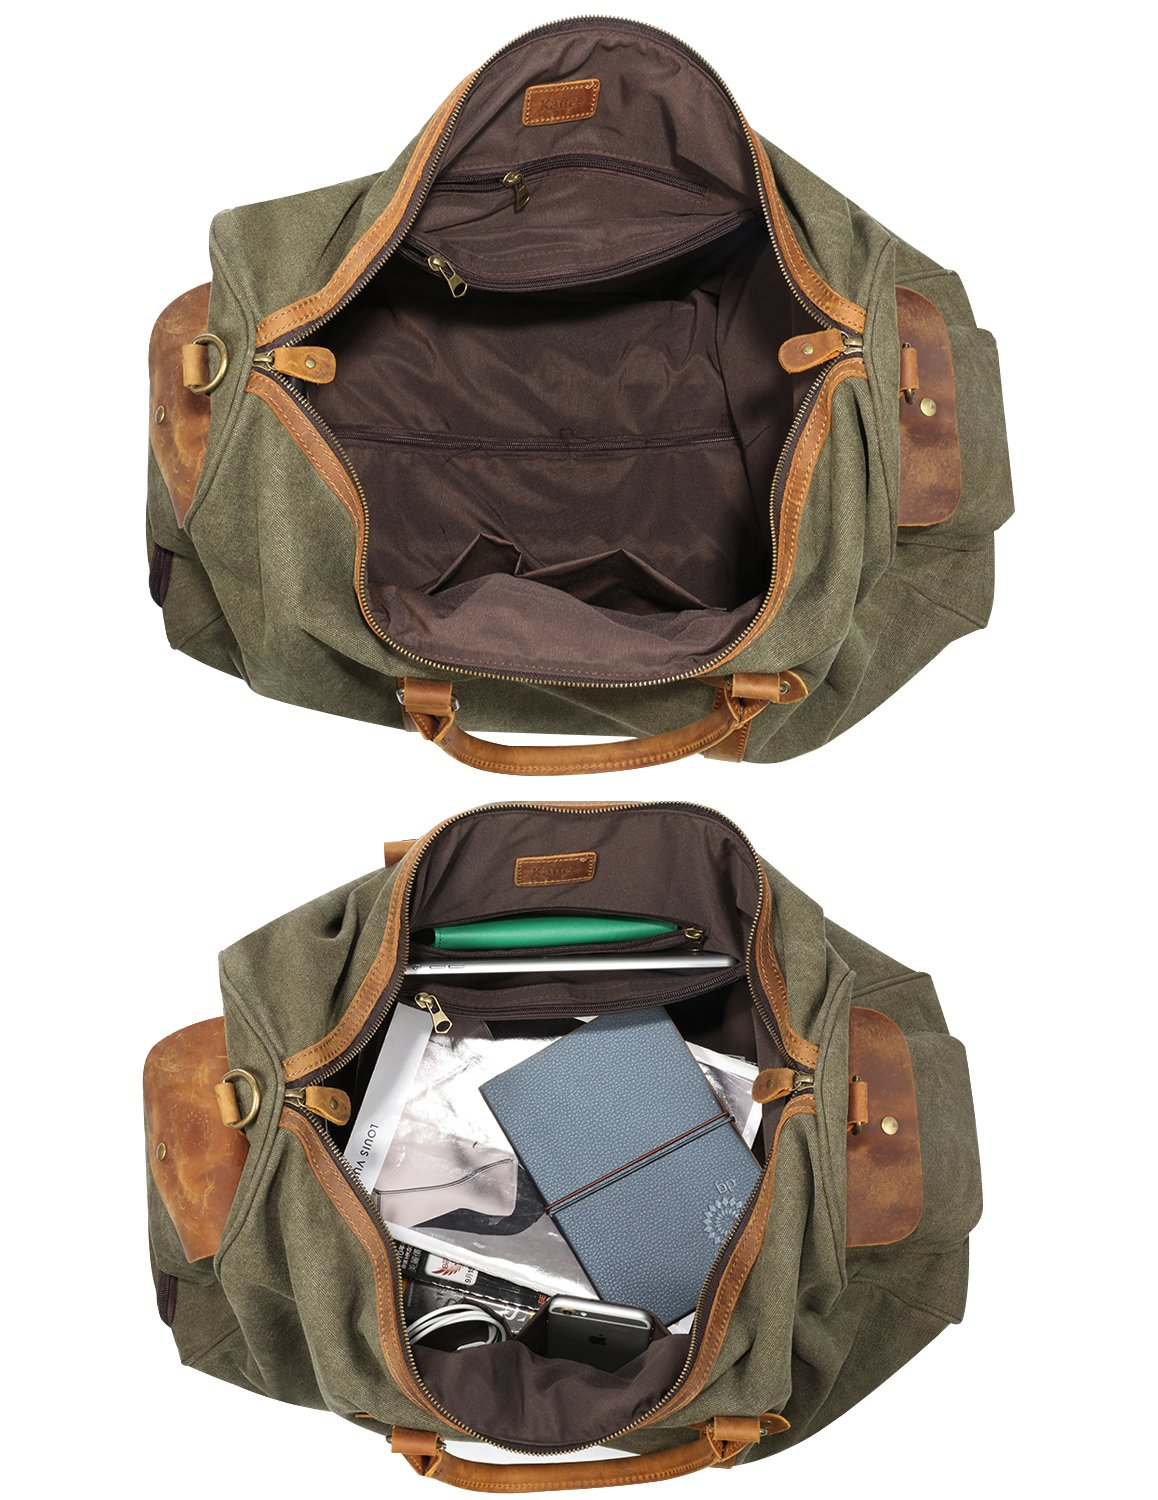 Kattee Rolling Duffle Bag with Wheels Canvas Travel Luggage Duffel Bag 50L (Army Green) by Kattee (Image #6)